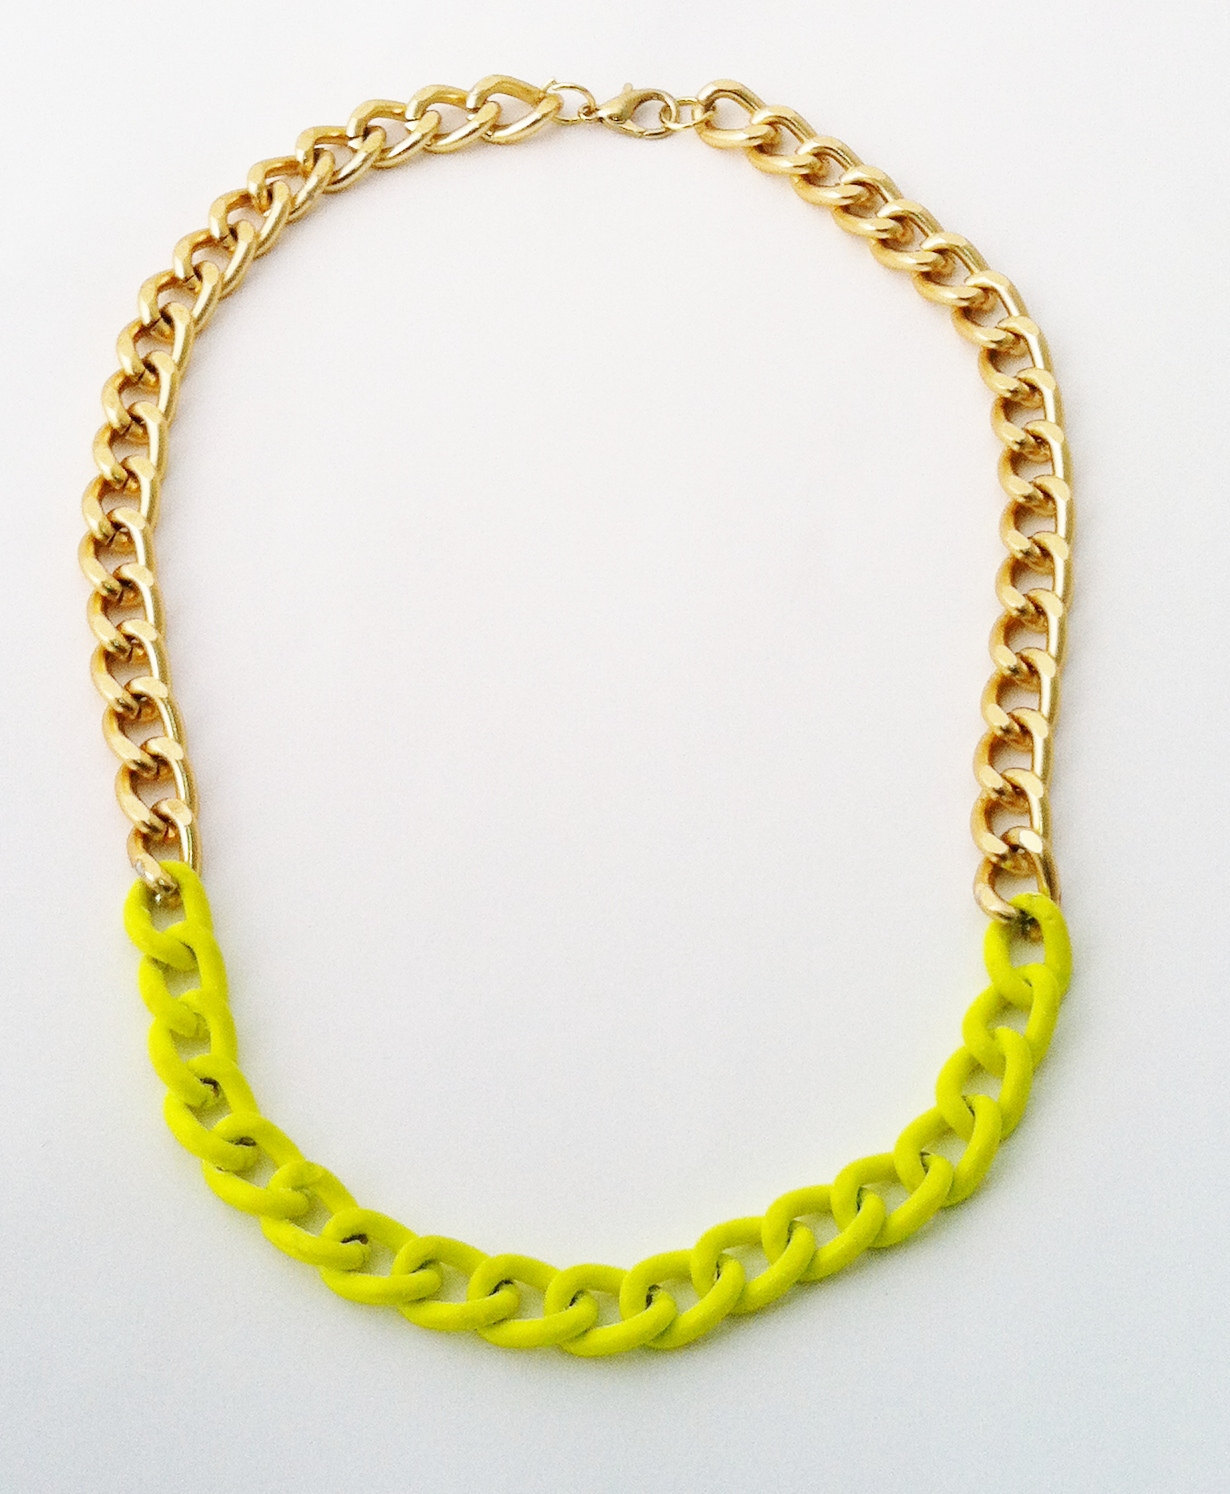 Neon Yellow and Gold Mixed Chain (only $19 on Etsy!)